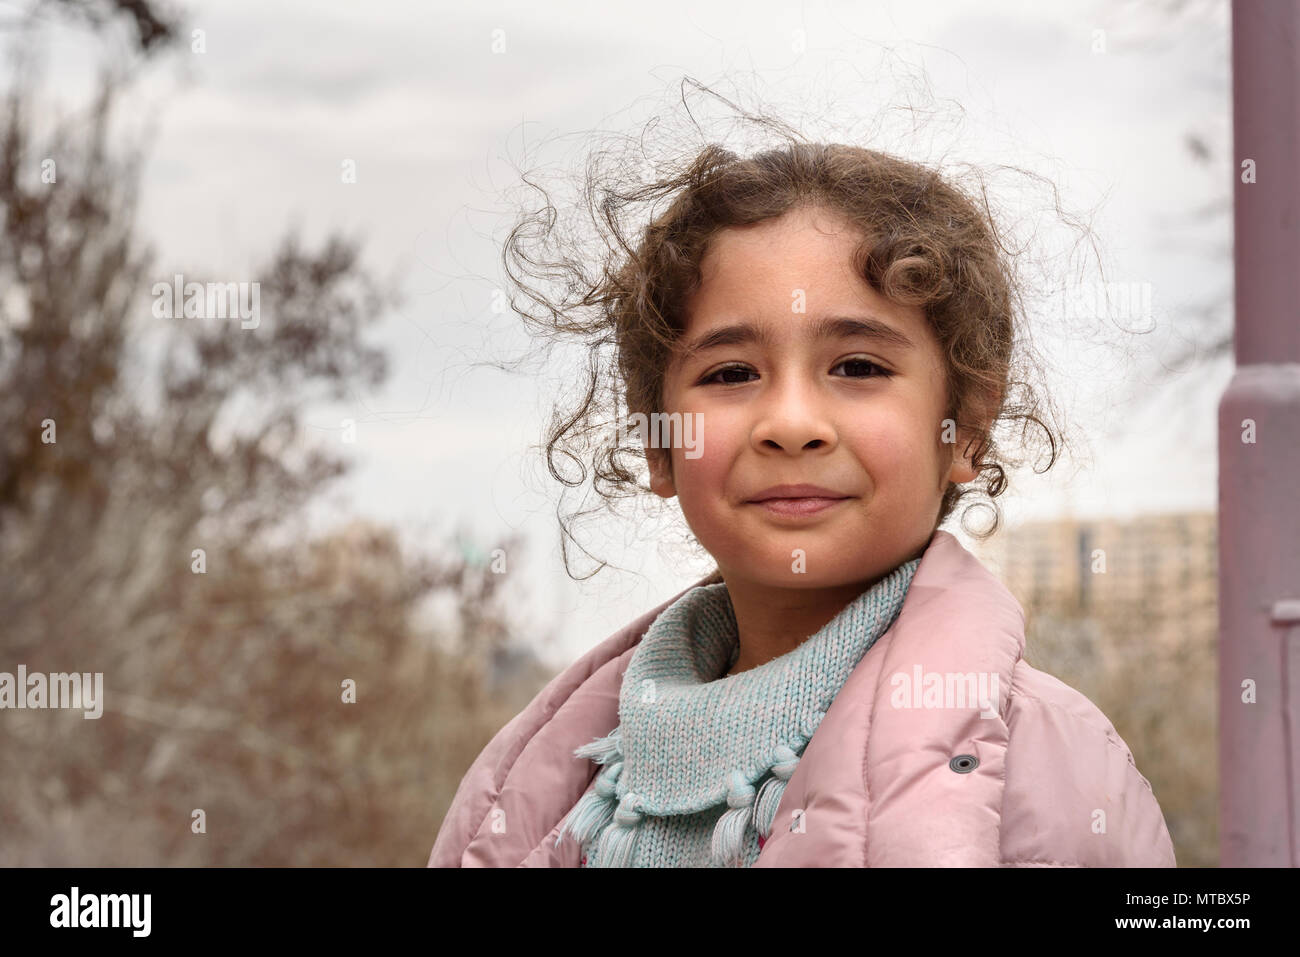 Tabriz, East Azerbaijan province, Iran - March 15, 2018: Iranian girl on the city street in park in spring - Stock Image